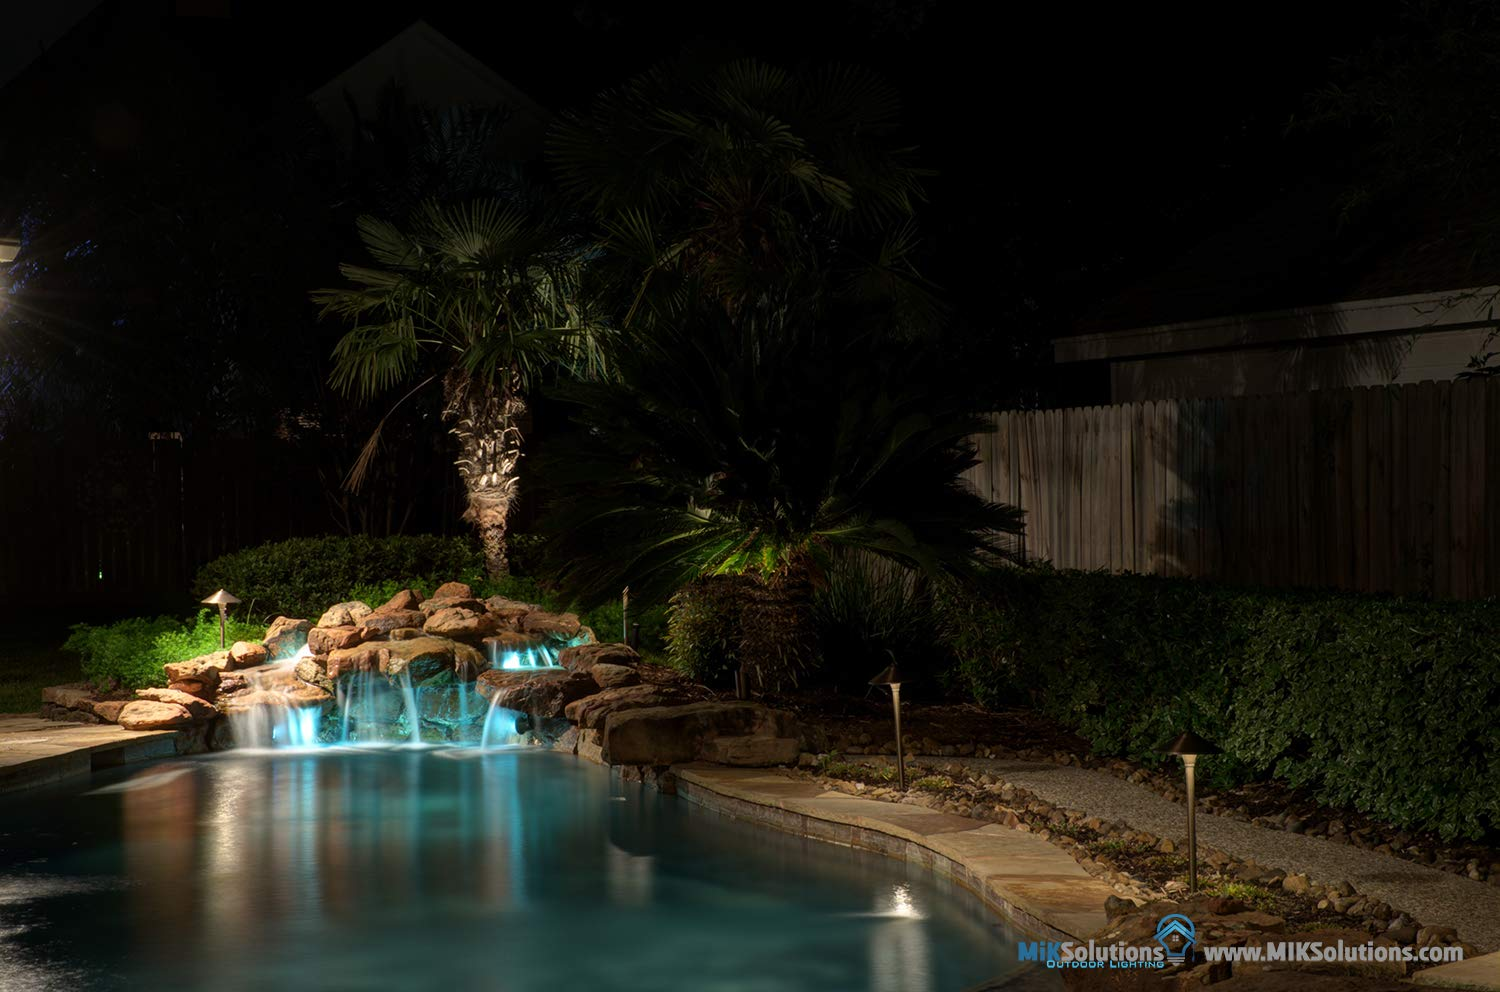 Underwater Light by MIK Solutions Solid Brass 7WMR16 LED Bulb Pond Light Submersible Waterfall Pool Fountain Light for Beautiful Bright Long Lasting Home Garden Patio Pool Area Lighting by MIK Solutions Outdoor Lighting (Image #6)